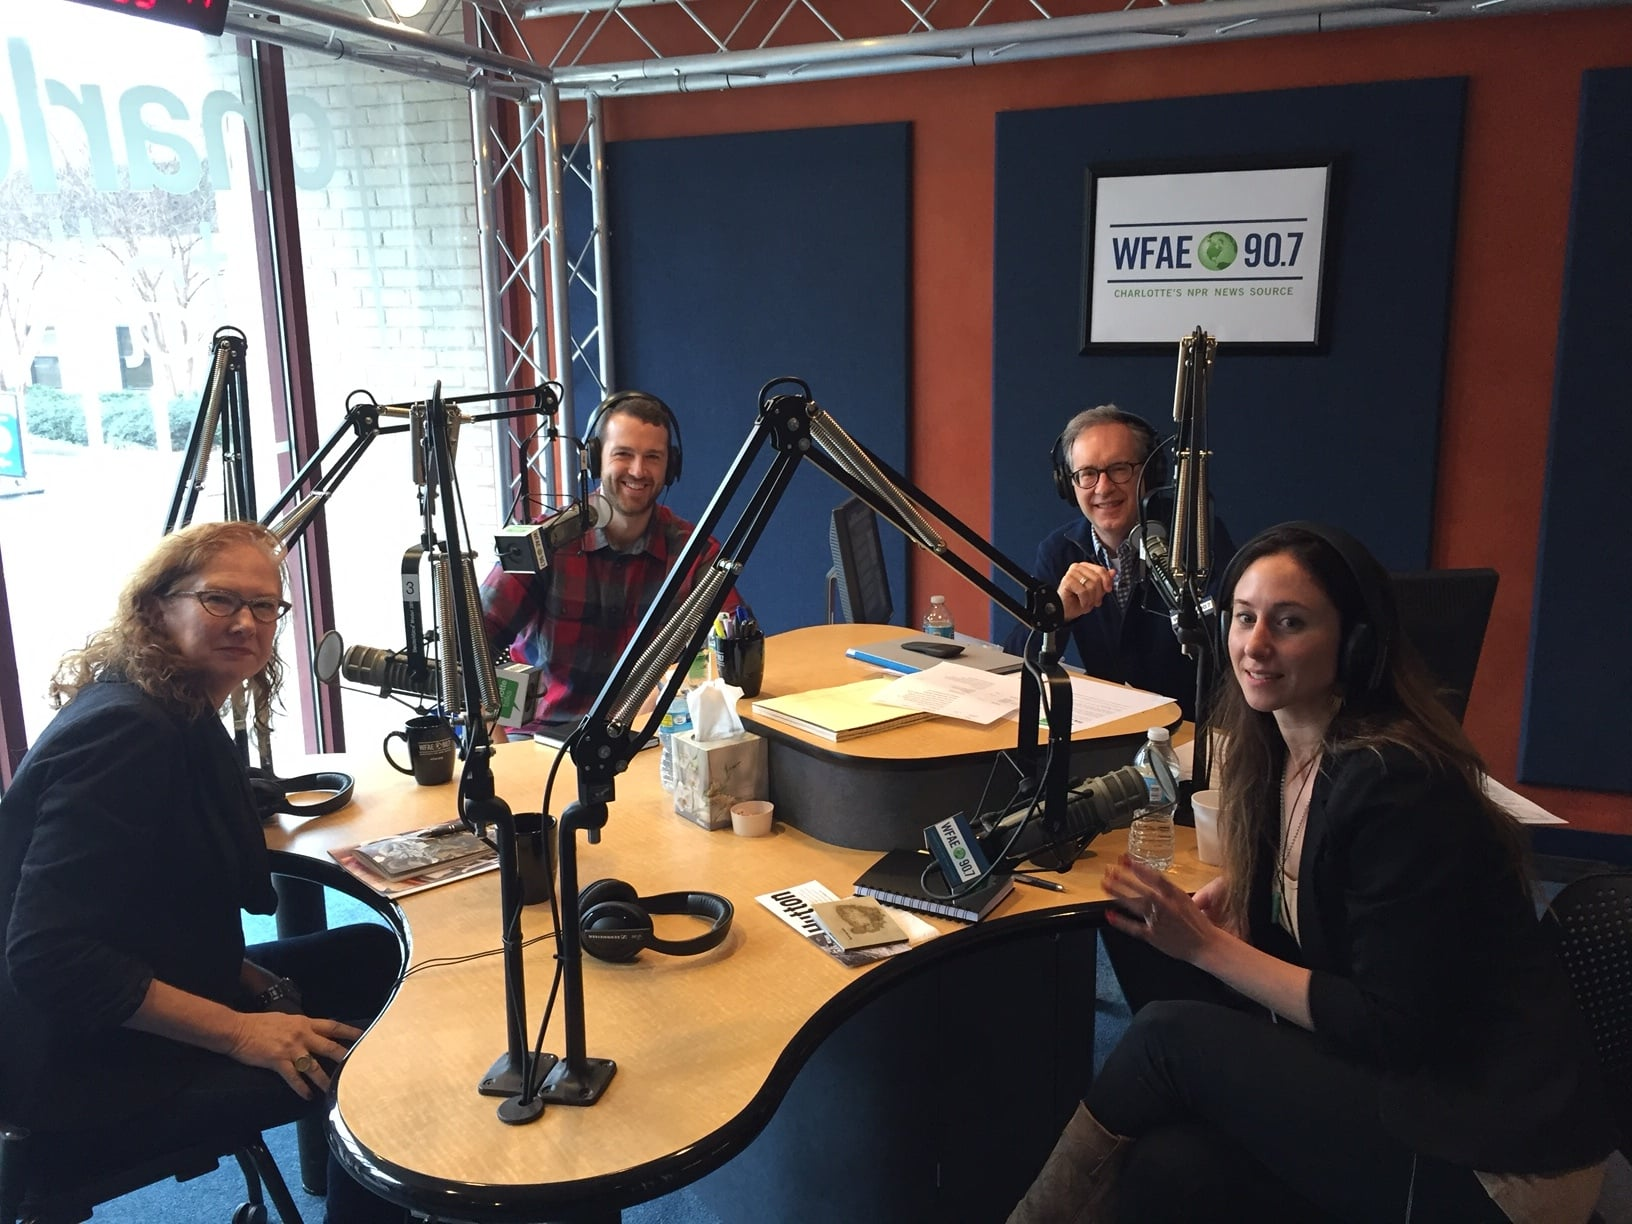 Myself with Kay Tuttle, Mike Collins, and Laurie Schorr at the WFAE station in Spirit Square, Charlotte, NC on Friday January 8th, 2016.